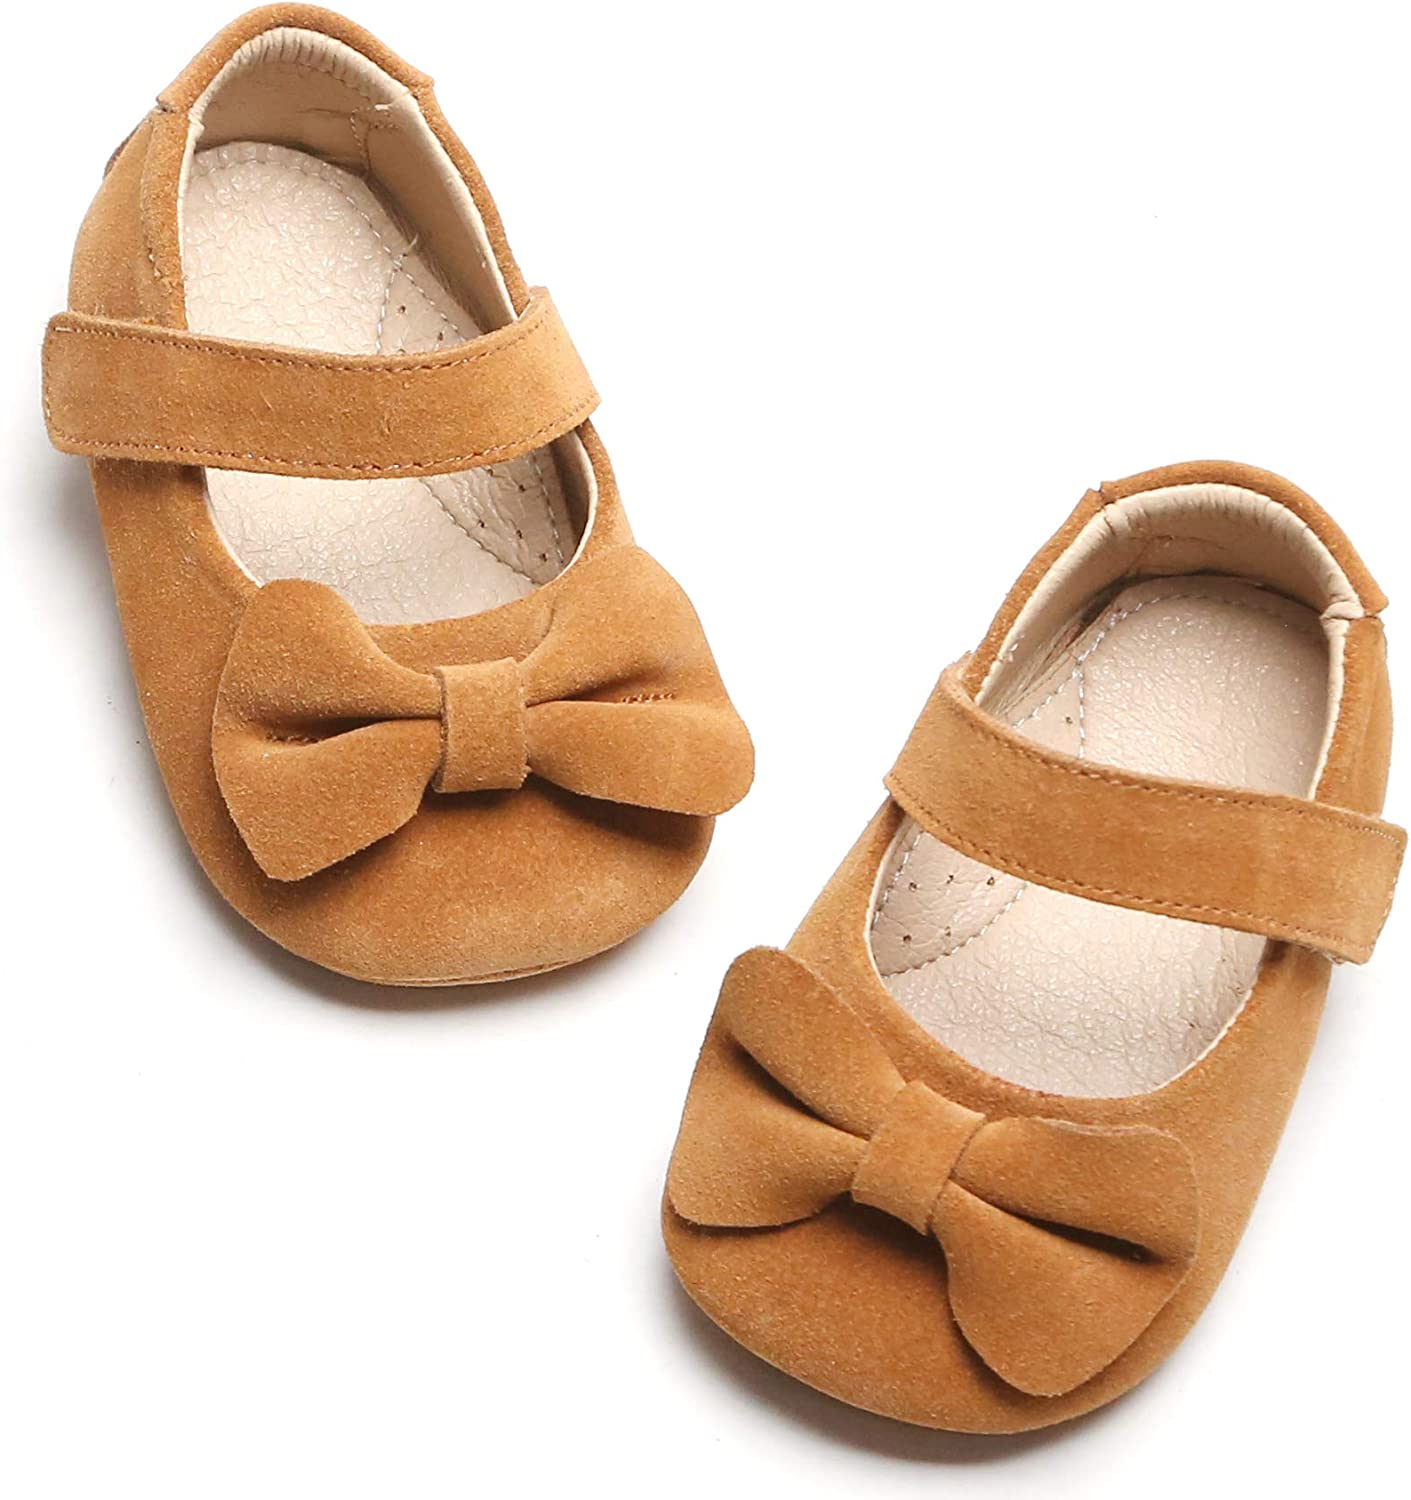 Infant//Toddler BEIMOO Baby Girls Soft Sole Prewalker Mary Jane Flats with Bowknot Toddler First Walkers Princess Dress Shoes